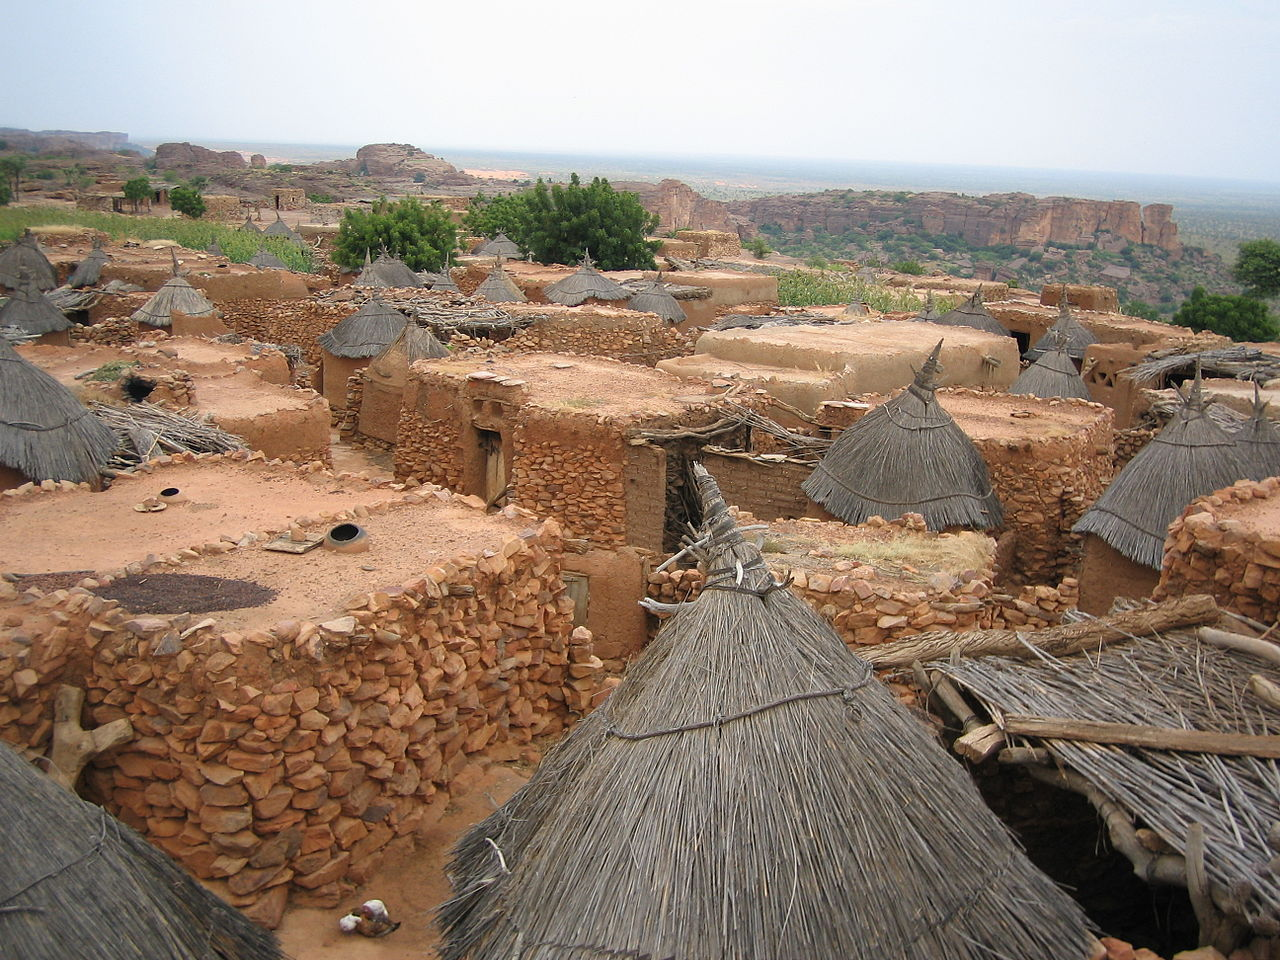 1280px-Dogon_village_rooftops_by_David_Sessoms.jpg